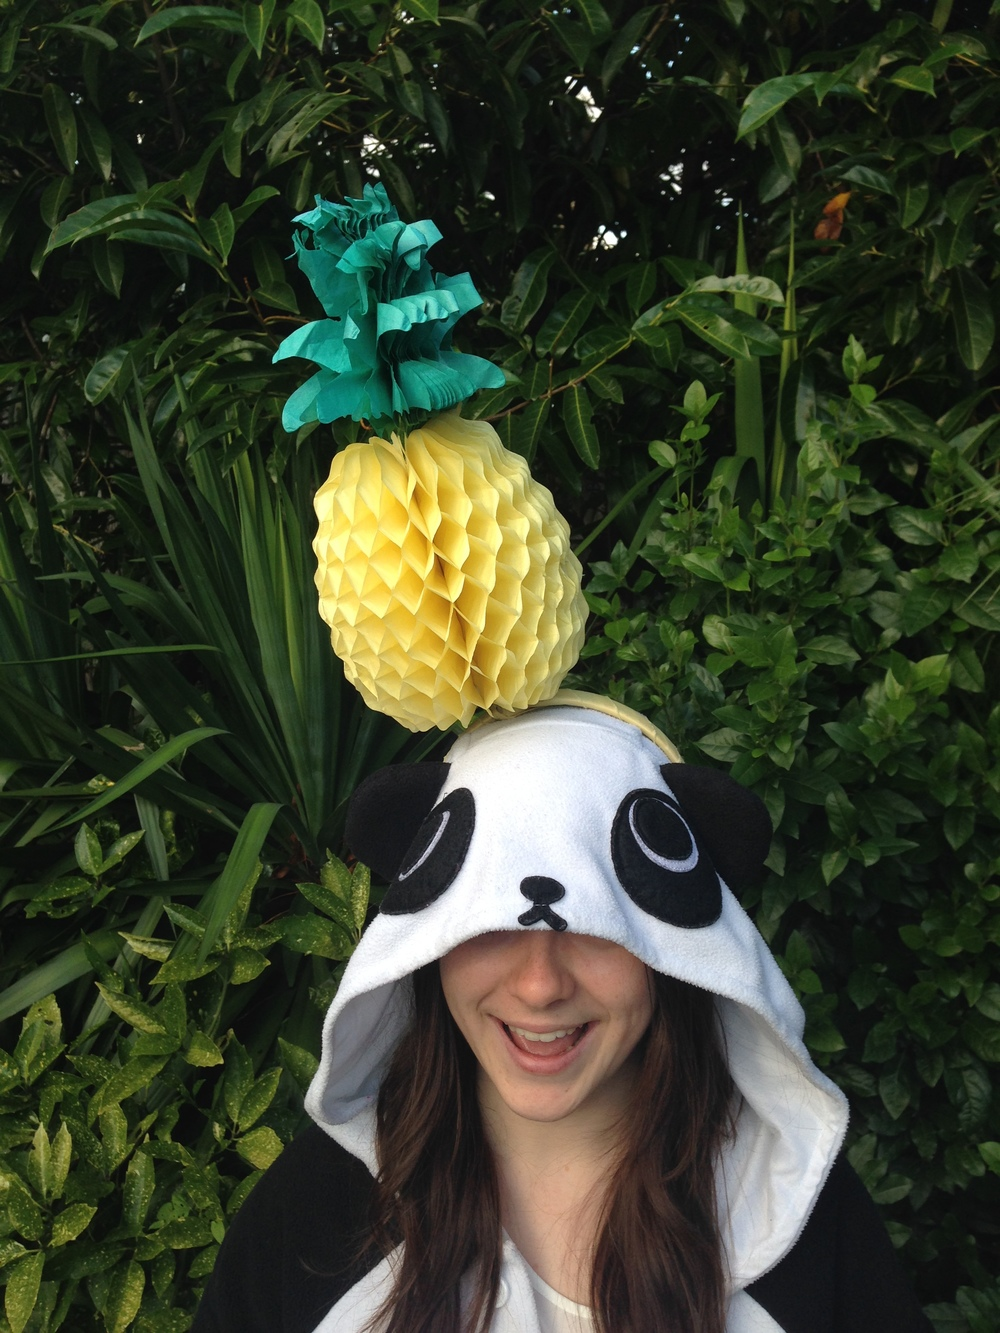 Ciara Monahan PIneapple Headpiece for Kigu